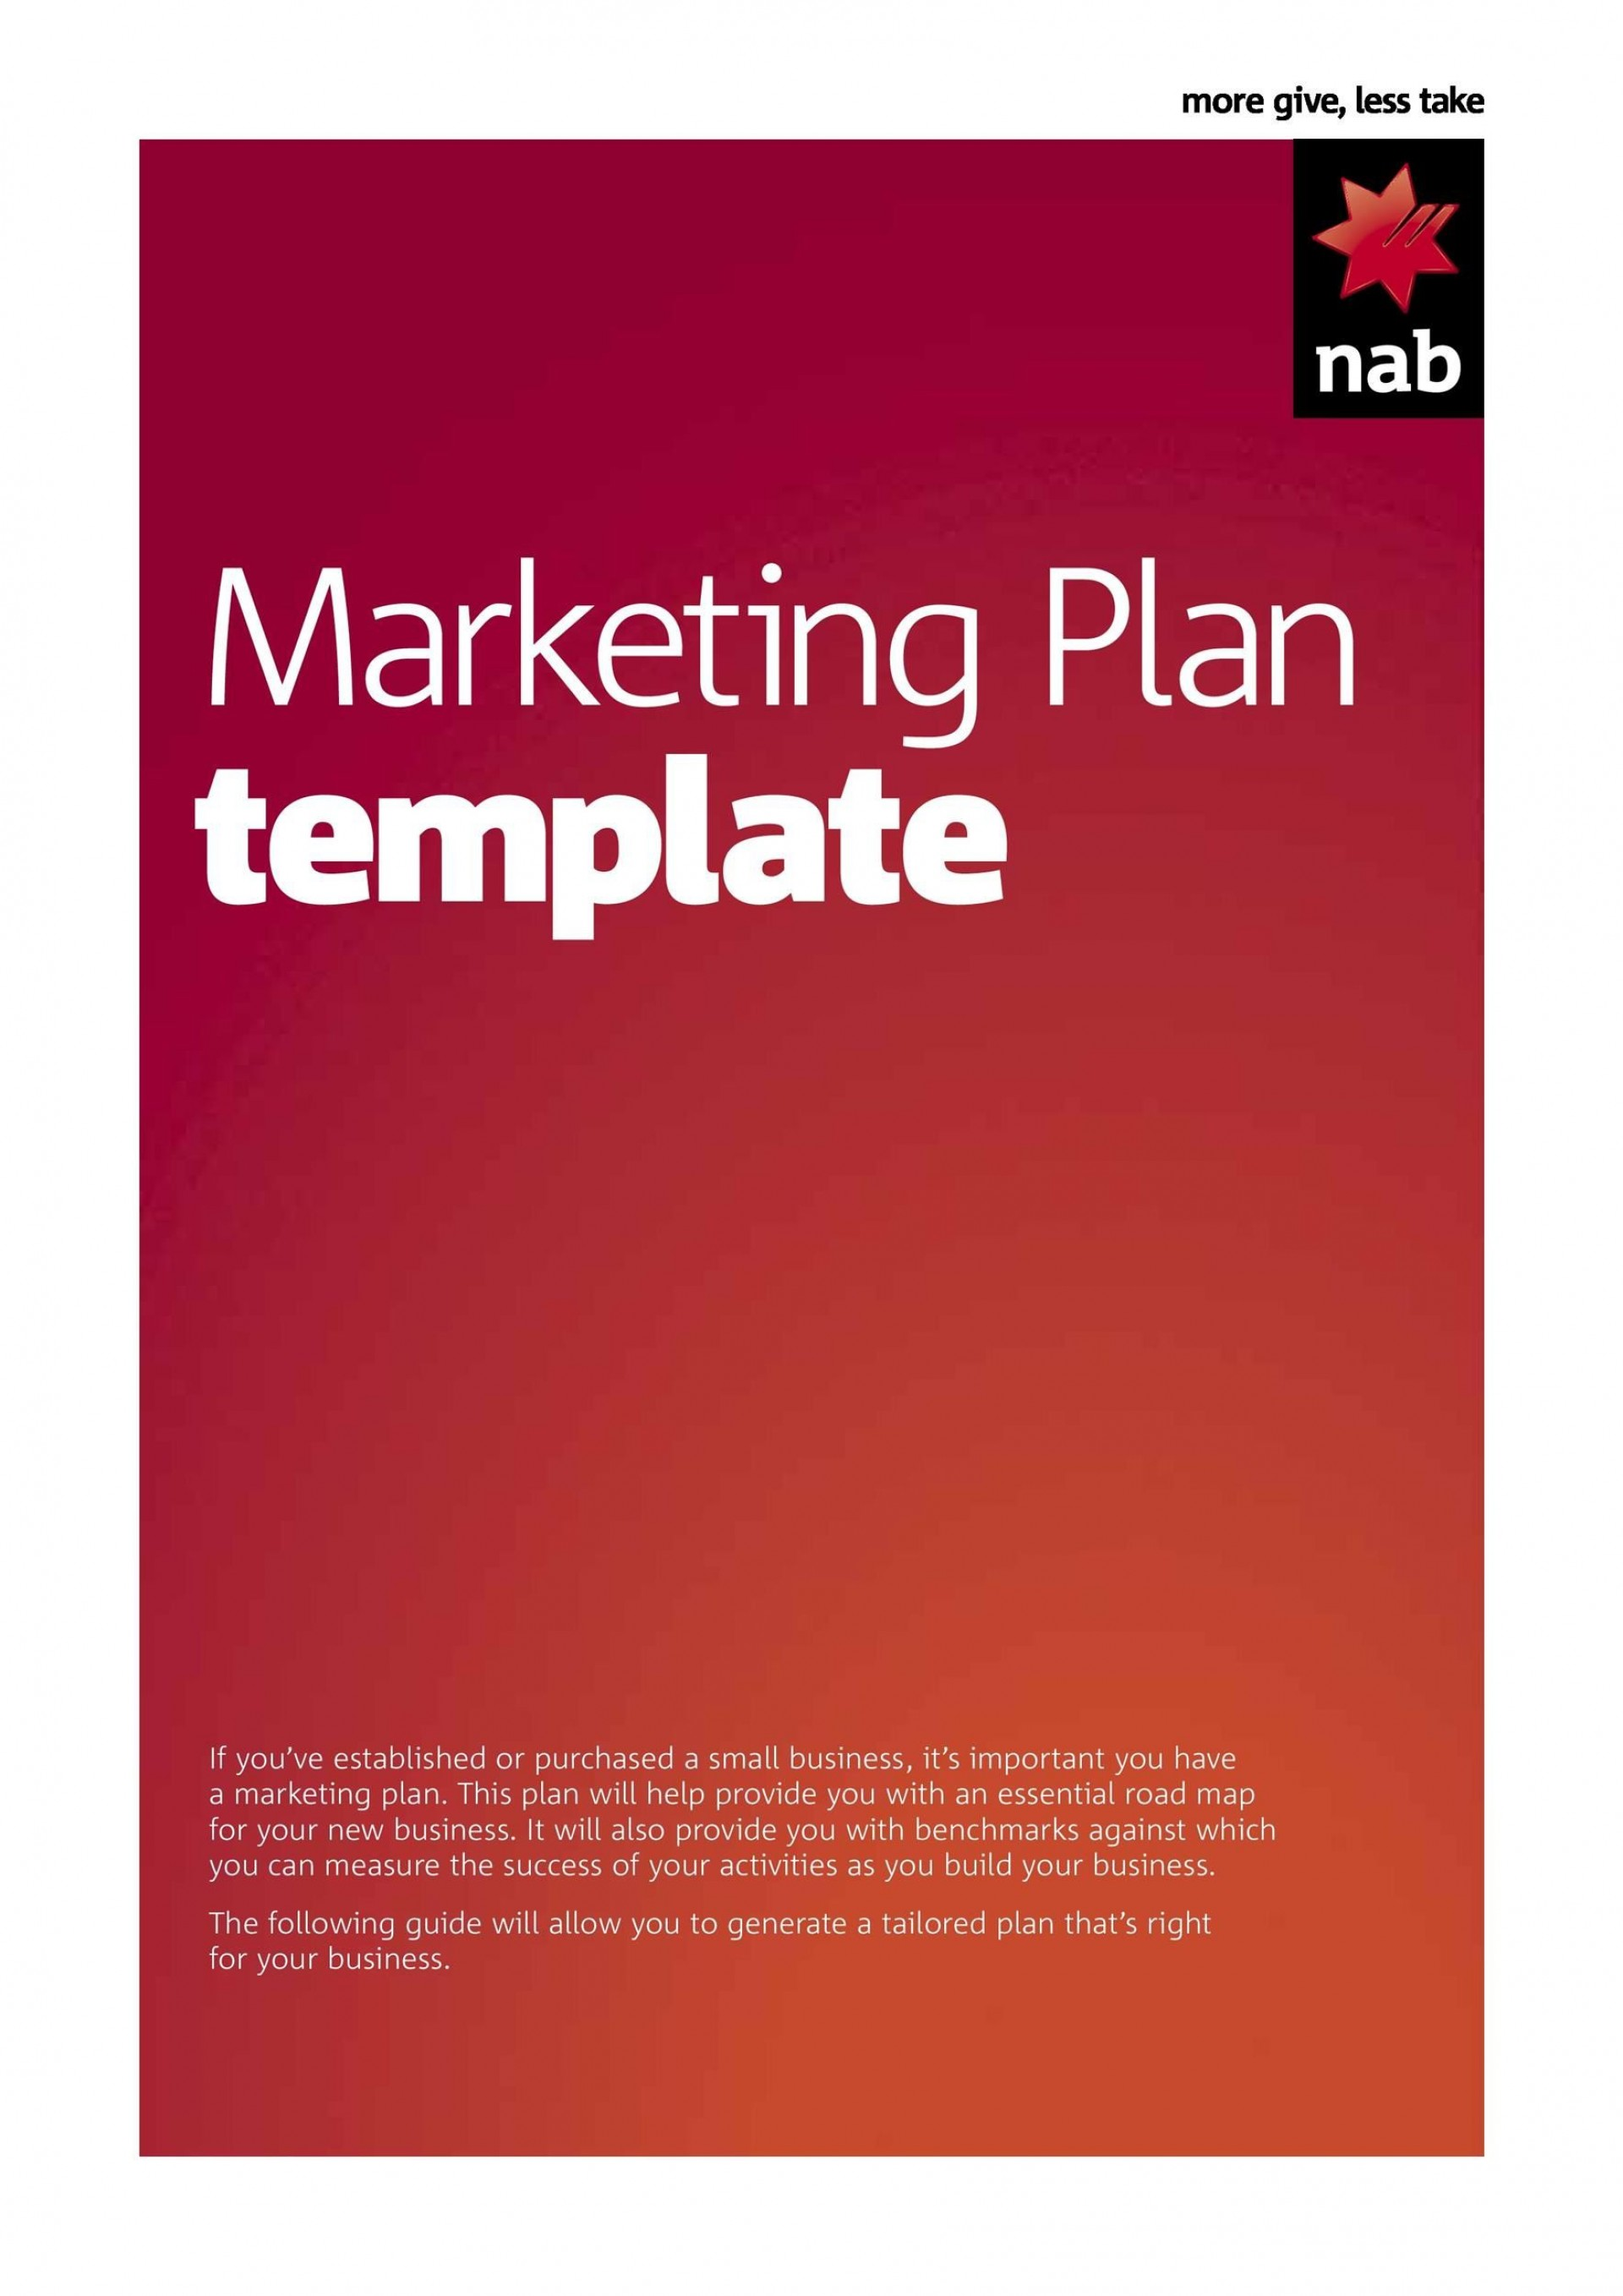 009 Exceptional Marketing Busines Plan Template Free High Definition  For Company Digital1920